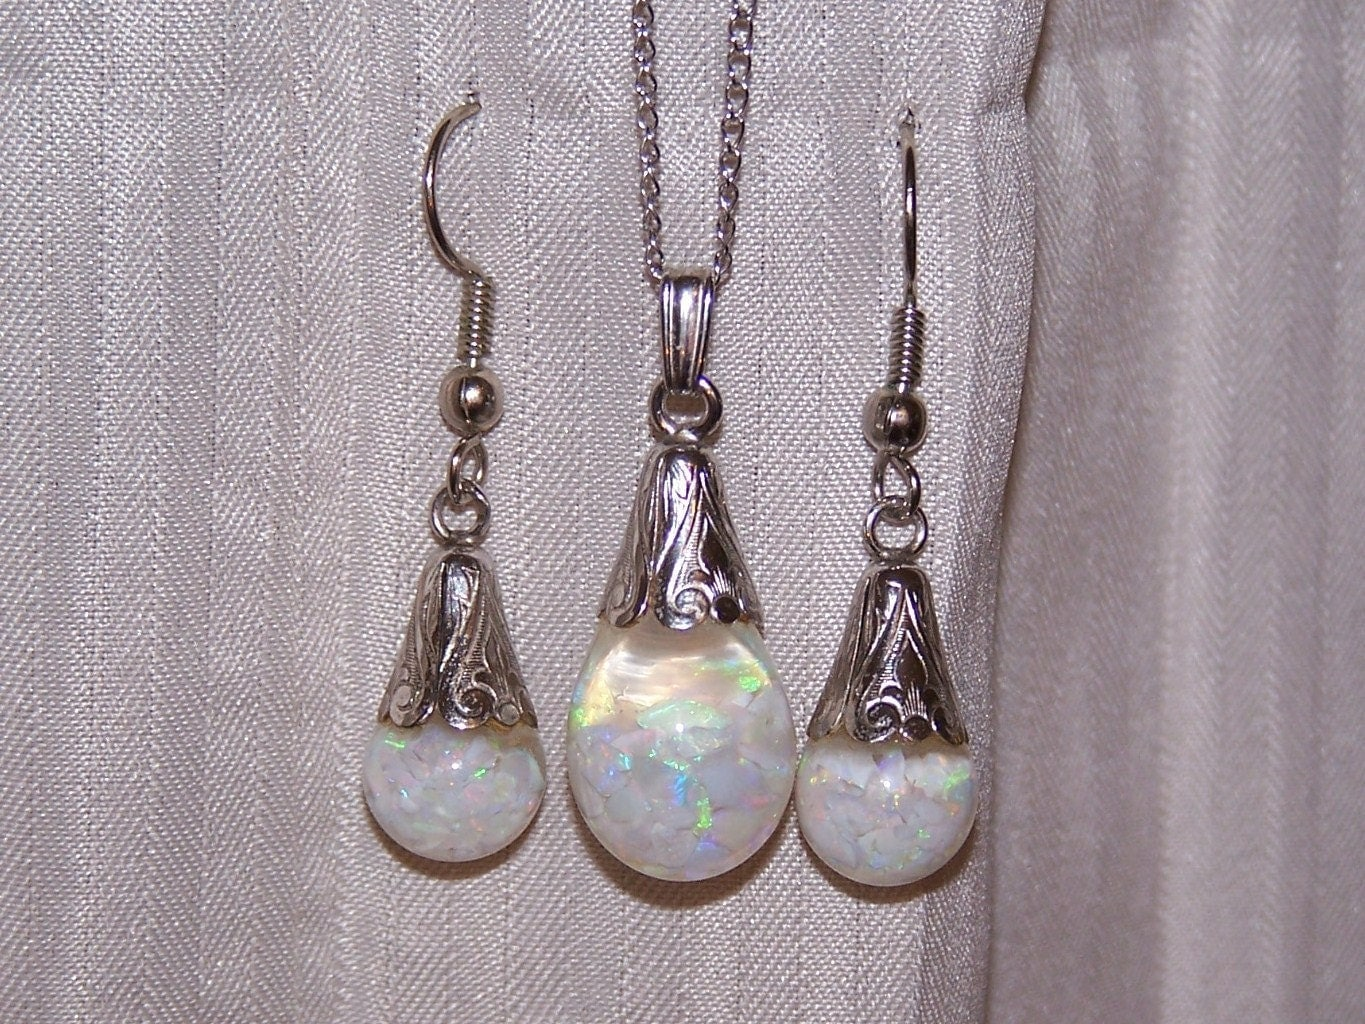 floating opal or opalite necklace and earrings set by